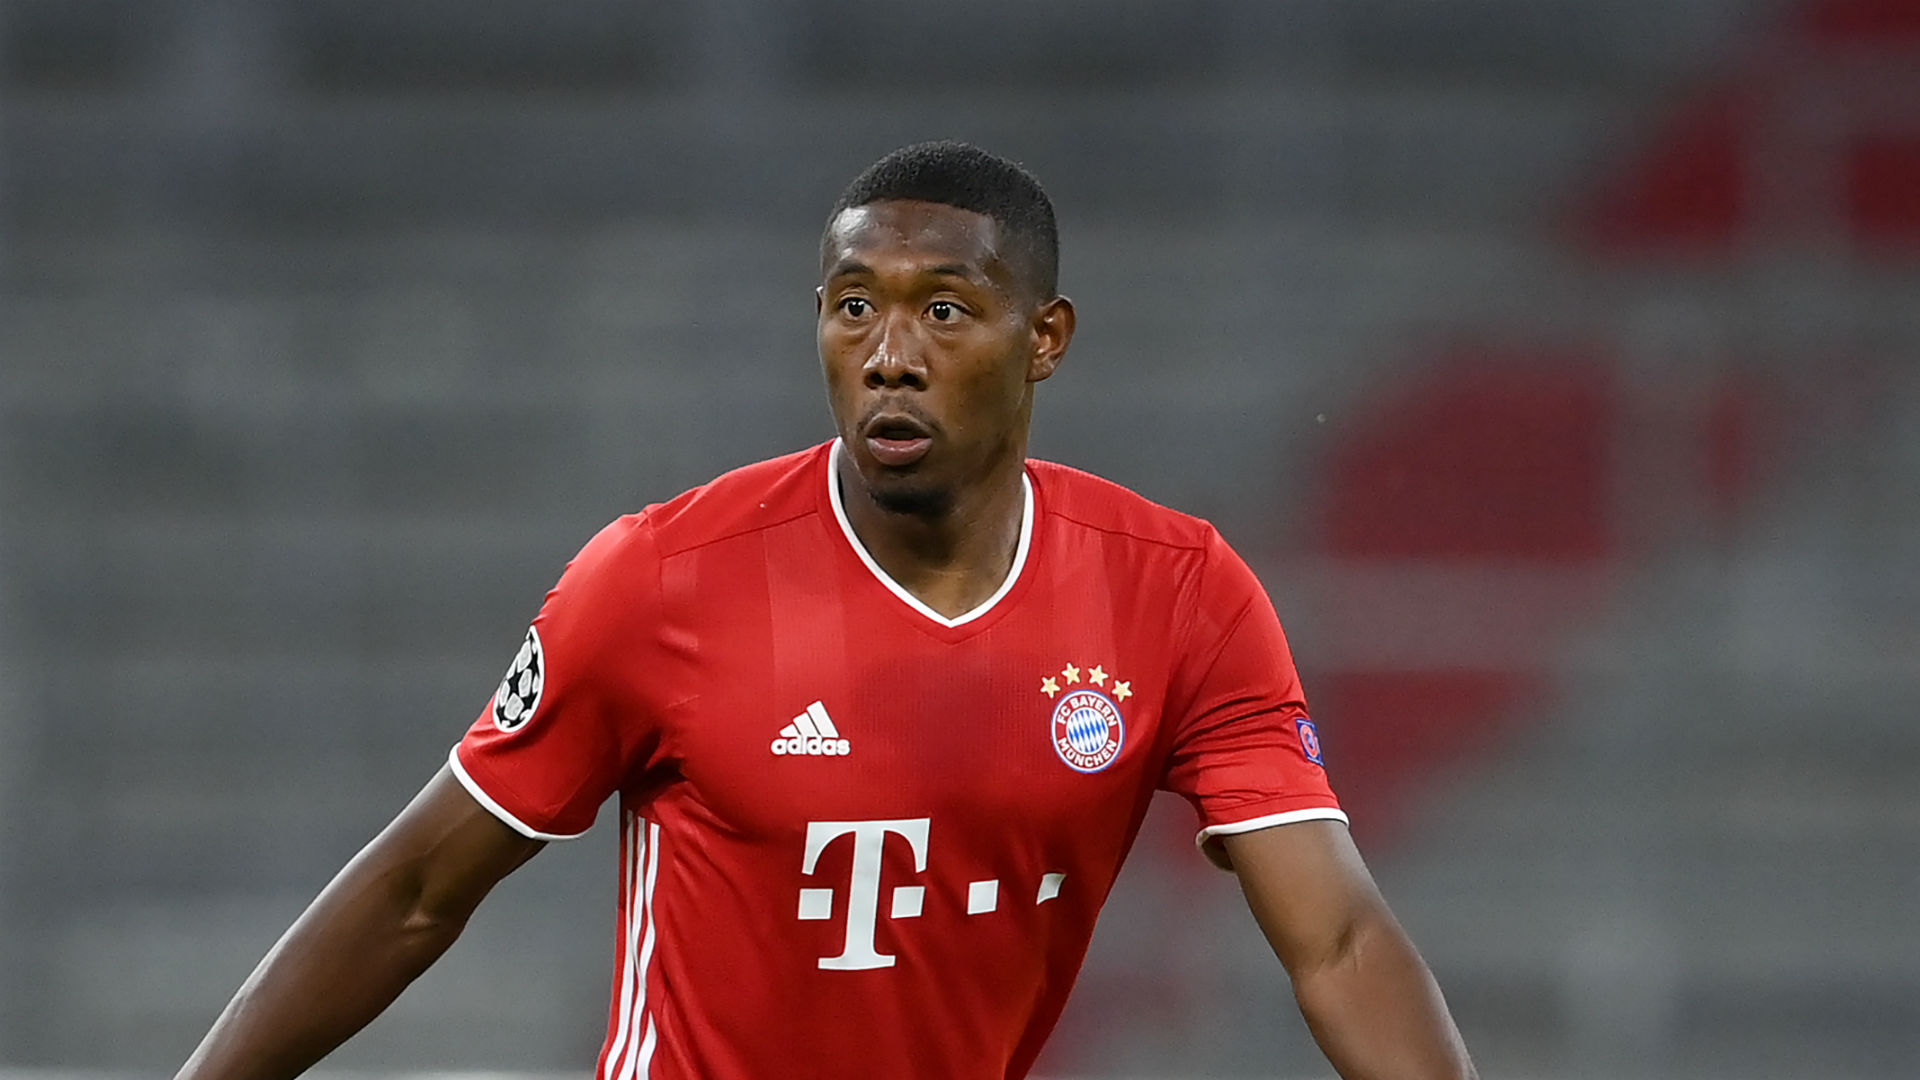 Bayern 'cautiously optimistic' on Alaba extension, want 'fair fee' for Thiago